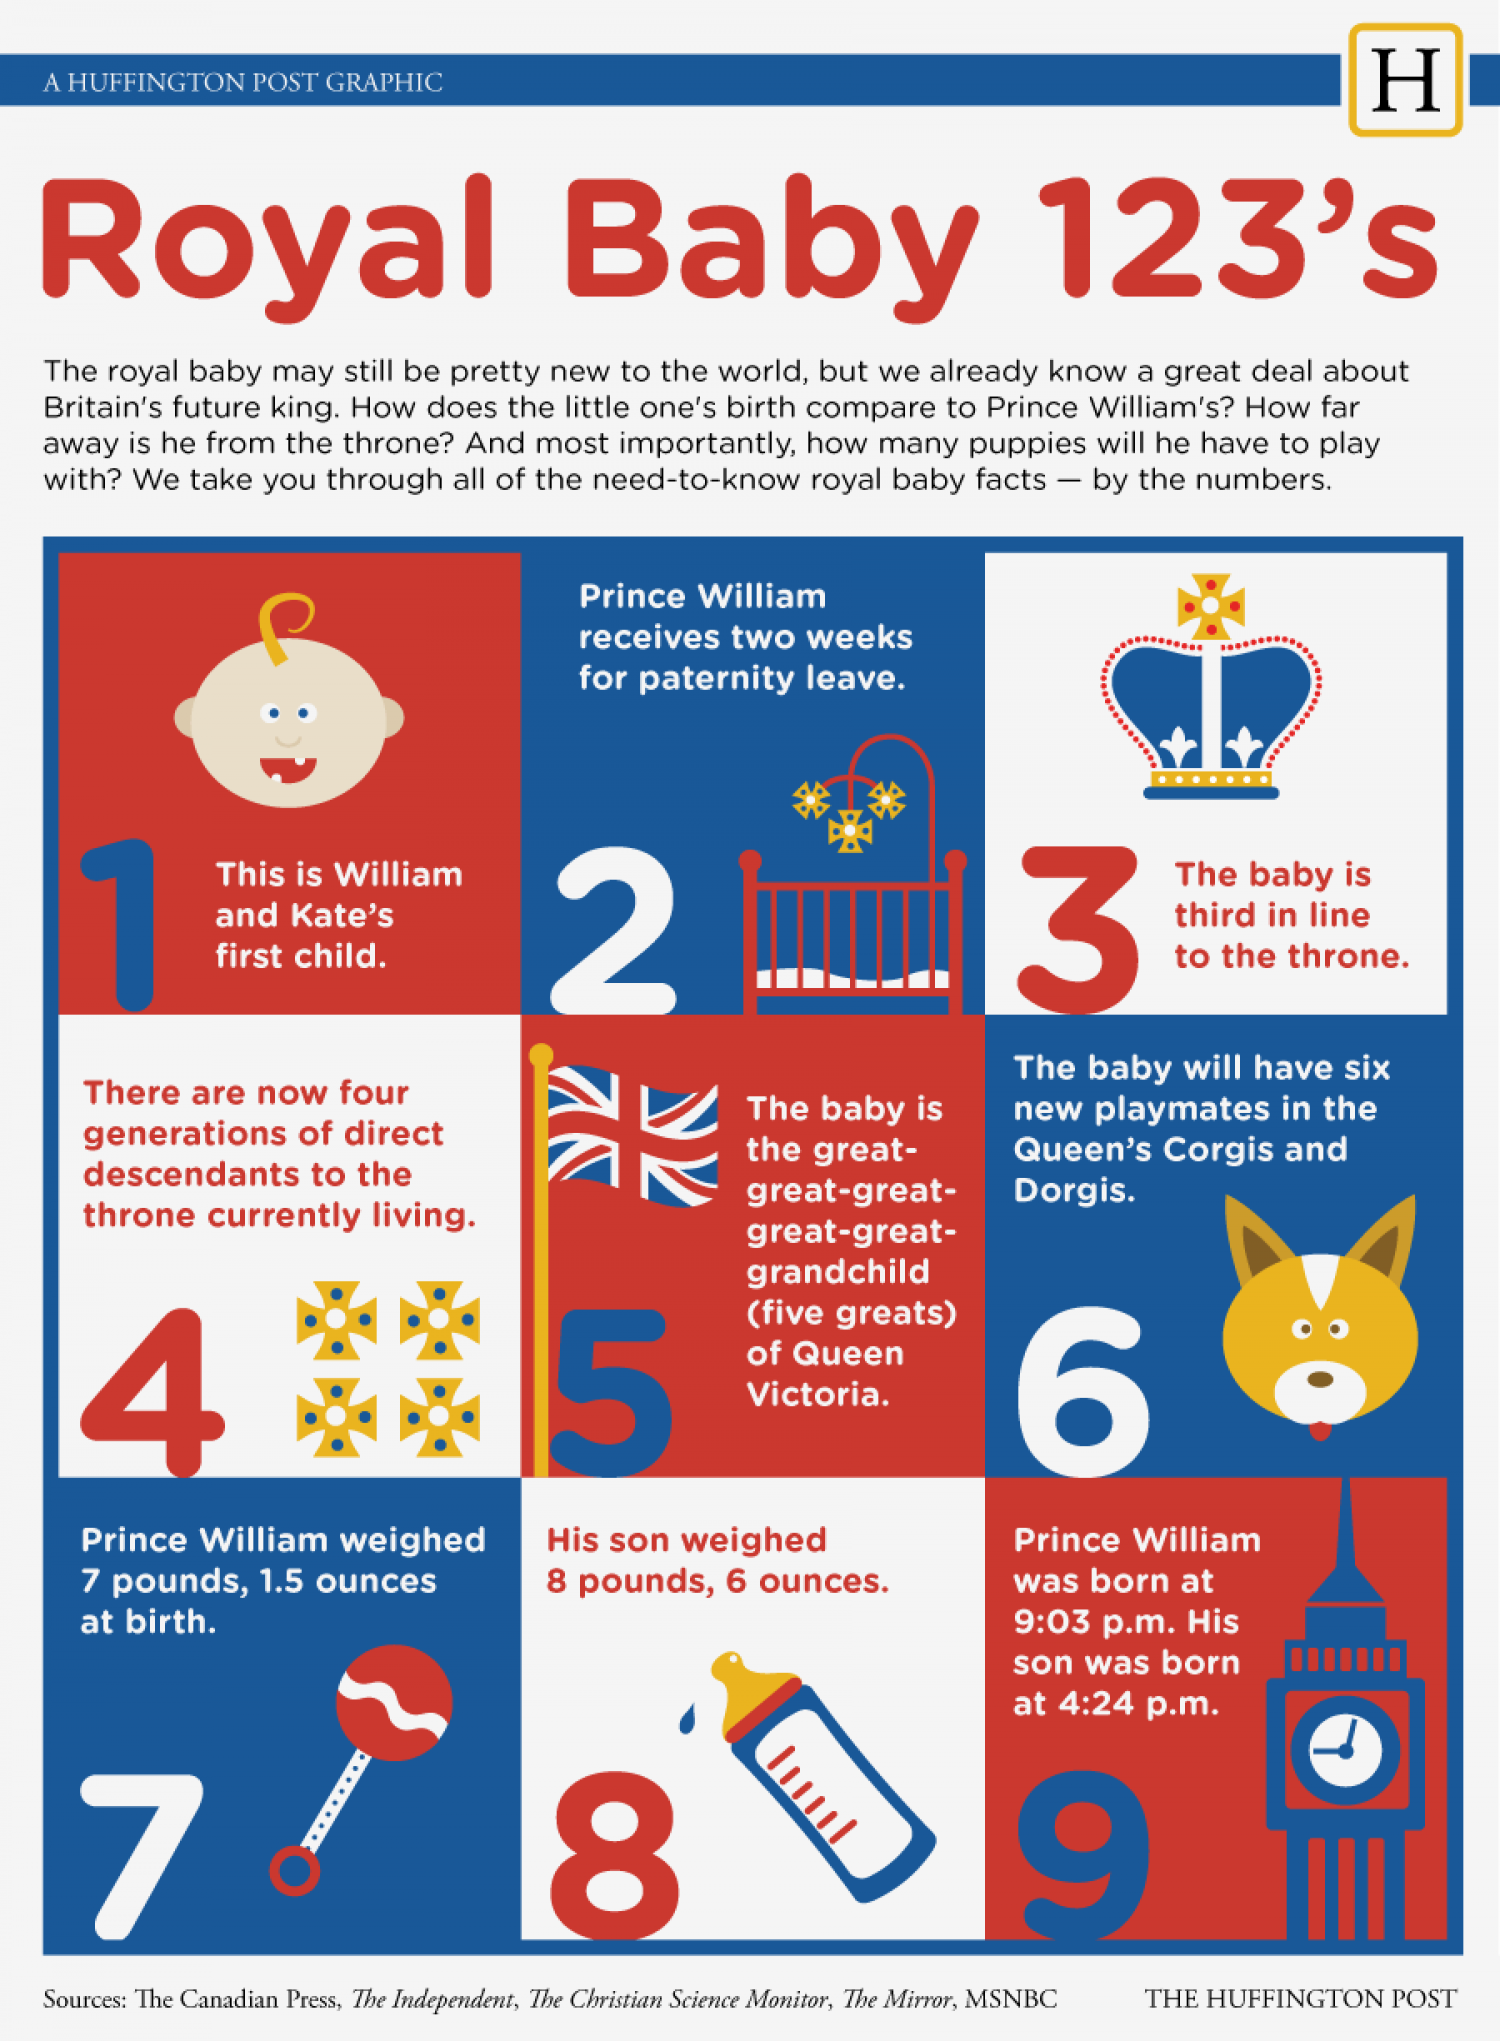 Royal Baby 123's Infographic